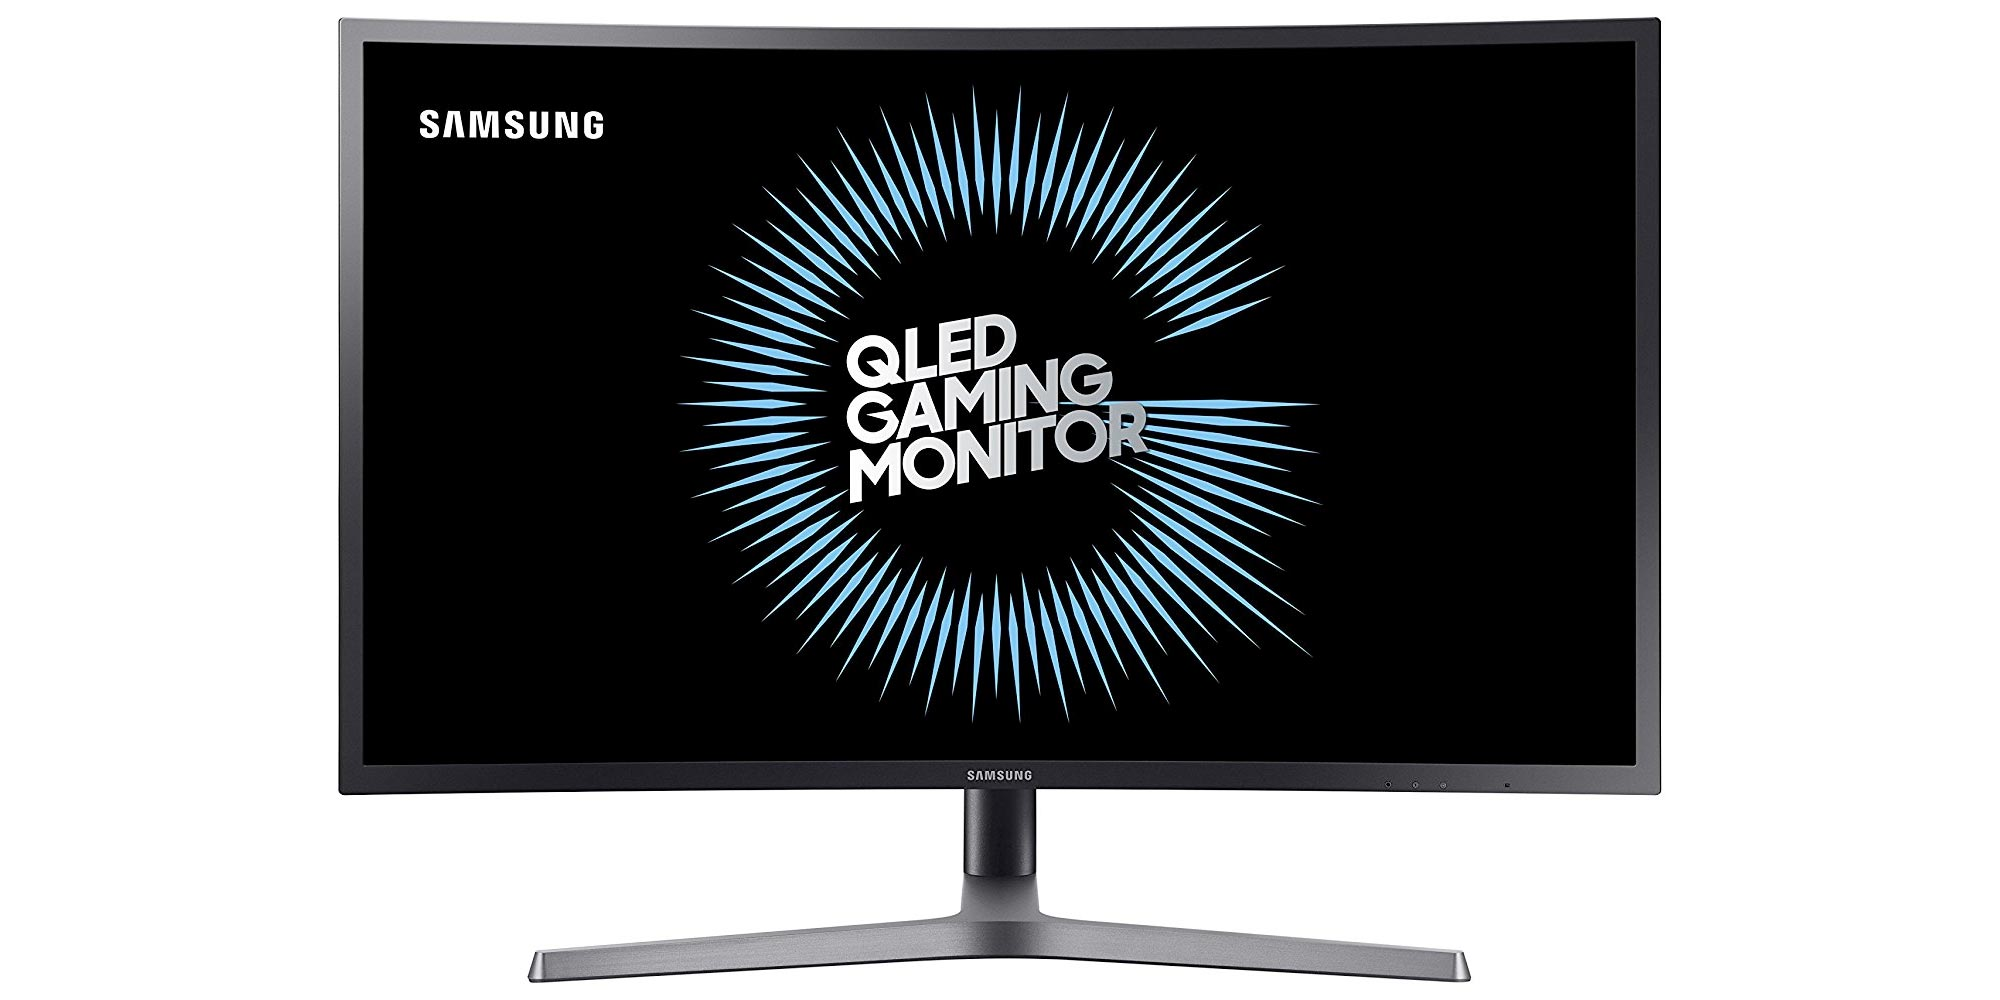 Samsung's 32-inch QLED Curved Monitor falls to new Amazon low at $470 (20% off), more